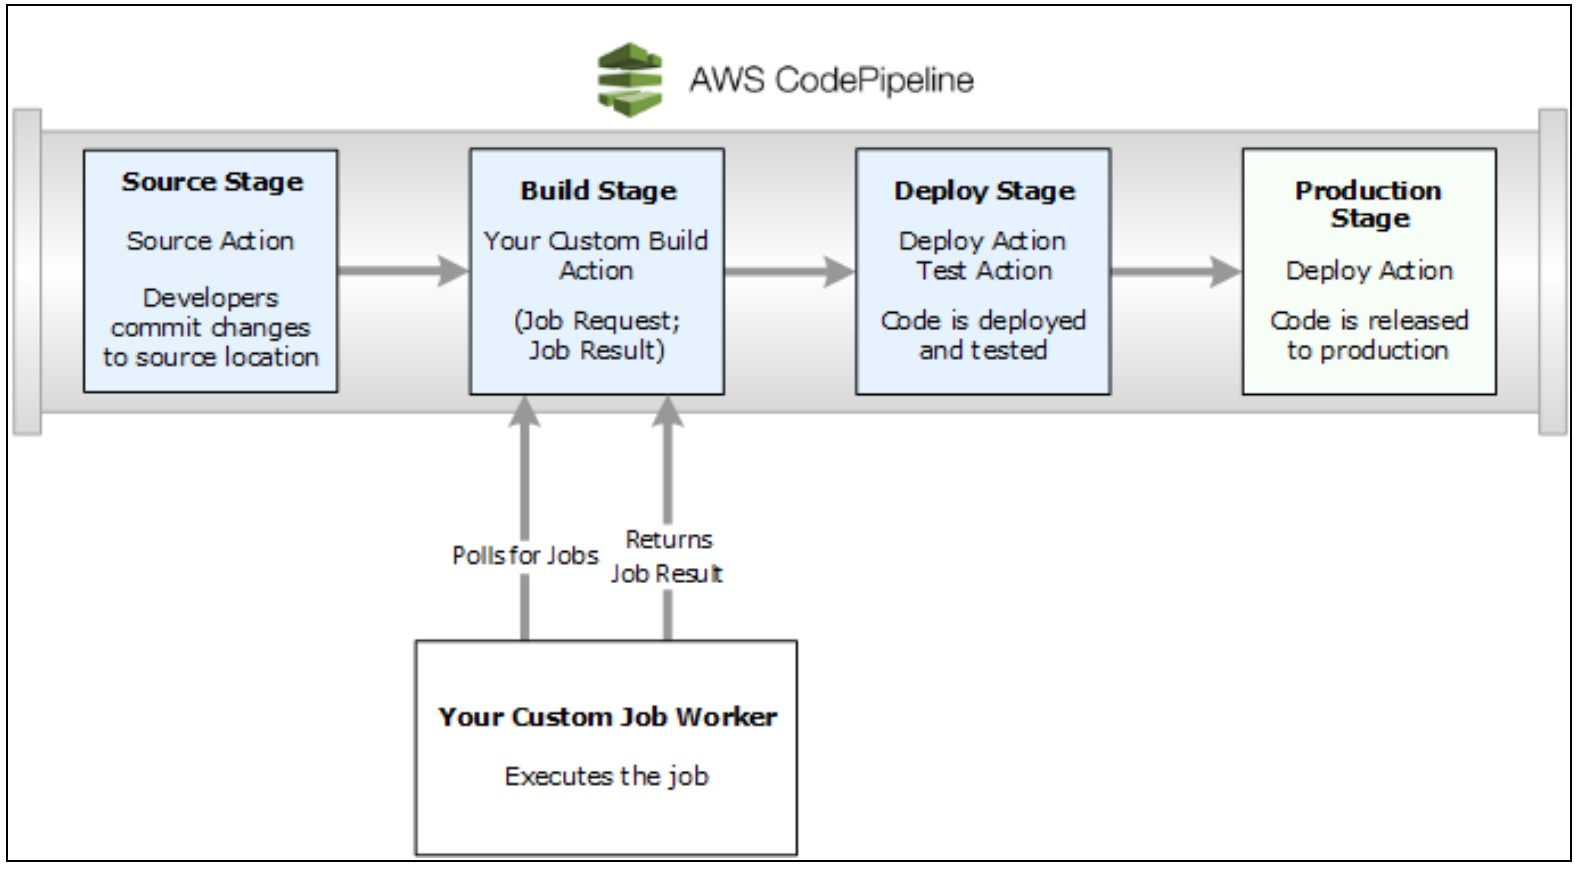 pipeline_details_aws